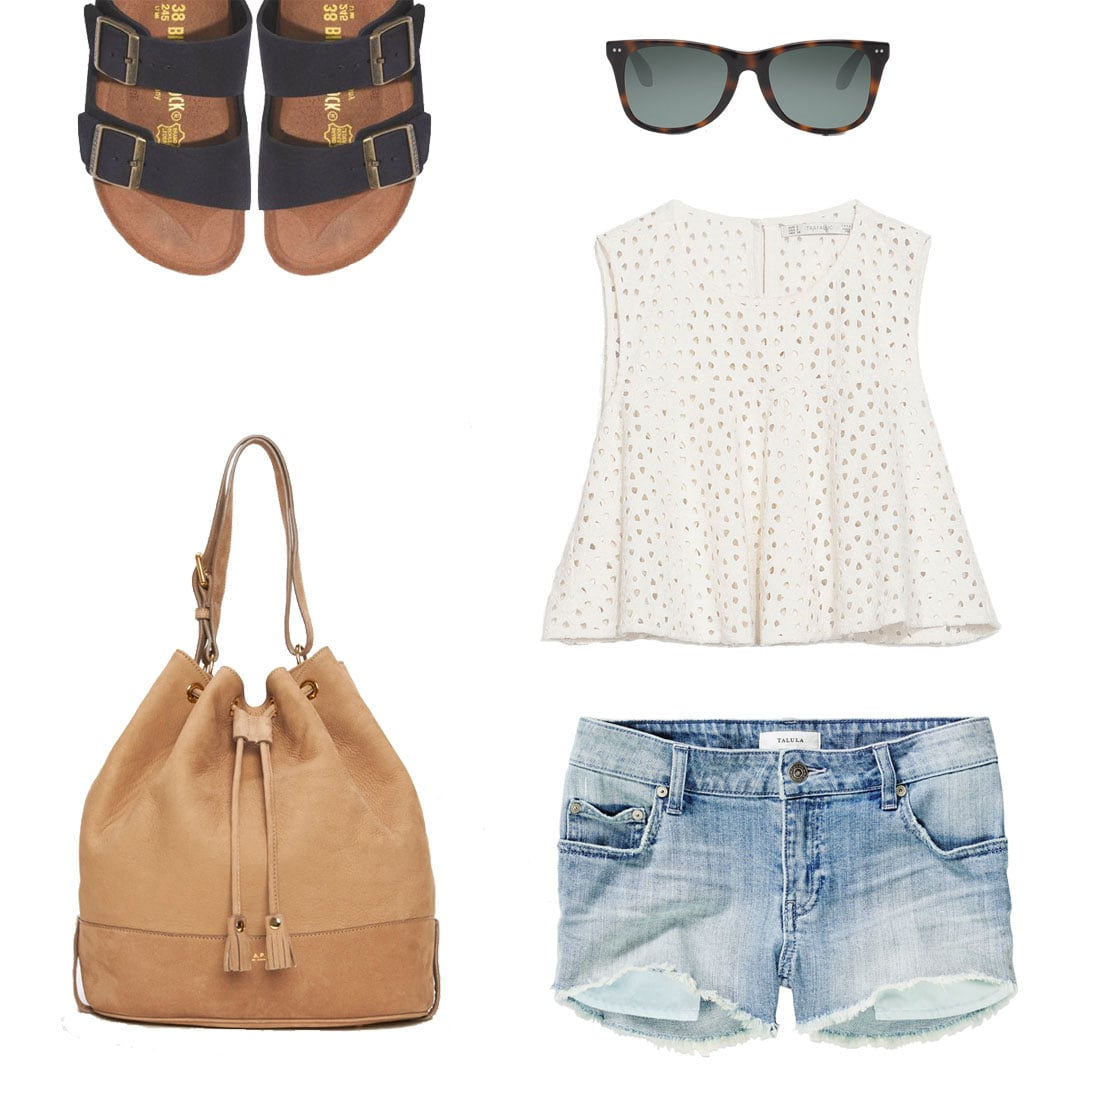 If you've got an easy beach day on the itinerary or you're having a low-key hangout with friends, stick to Summer staples like cutoffs and a breezy eyelet top. Then, add in a touch of the trends with Birkenstocks and a bucket bag in tow.  Shop the look:  Zara Crochet Crop Top ($40) Aritizia Talula The OC Shorts ($60) Toms Windward Tortoise Polarized Sunglasses ($149) A.P.C. Nubuck Sac ($420) Birkenstock & Madewell Arizona Sandals ($120)